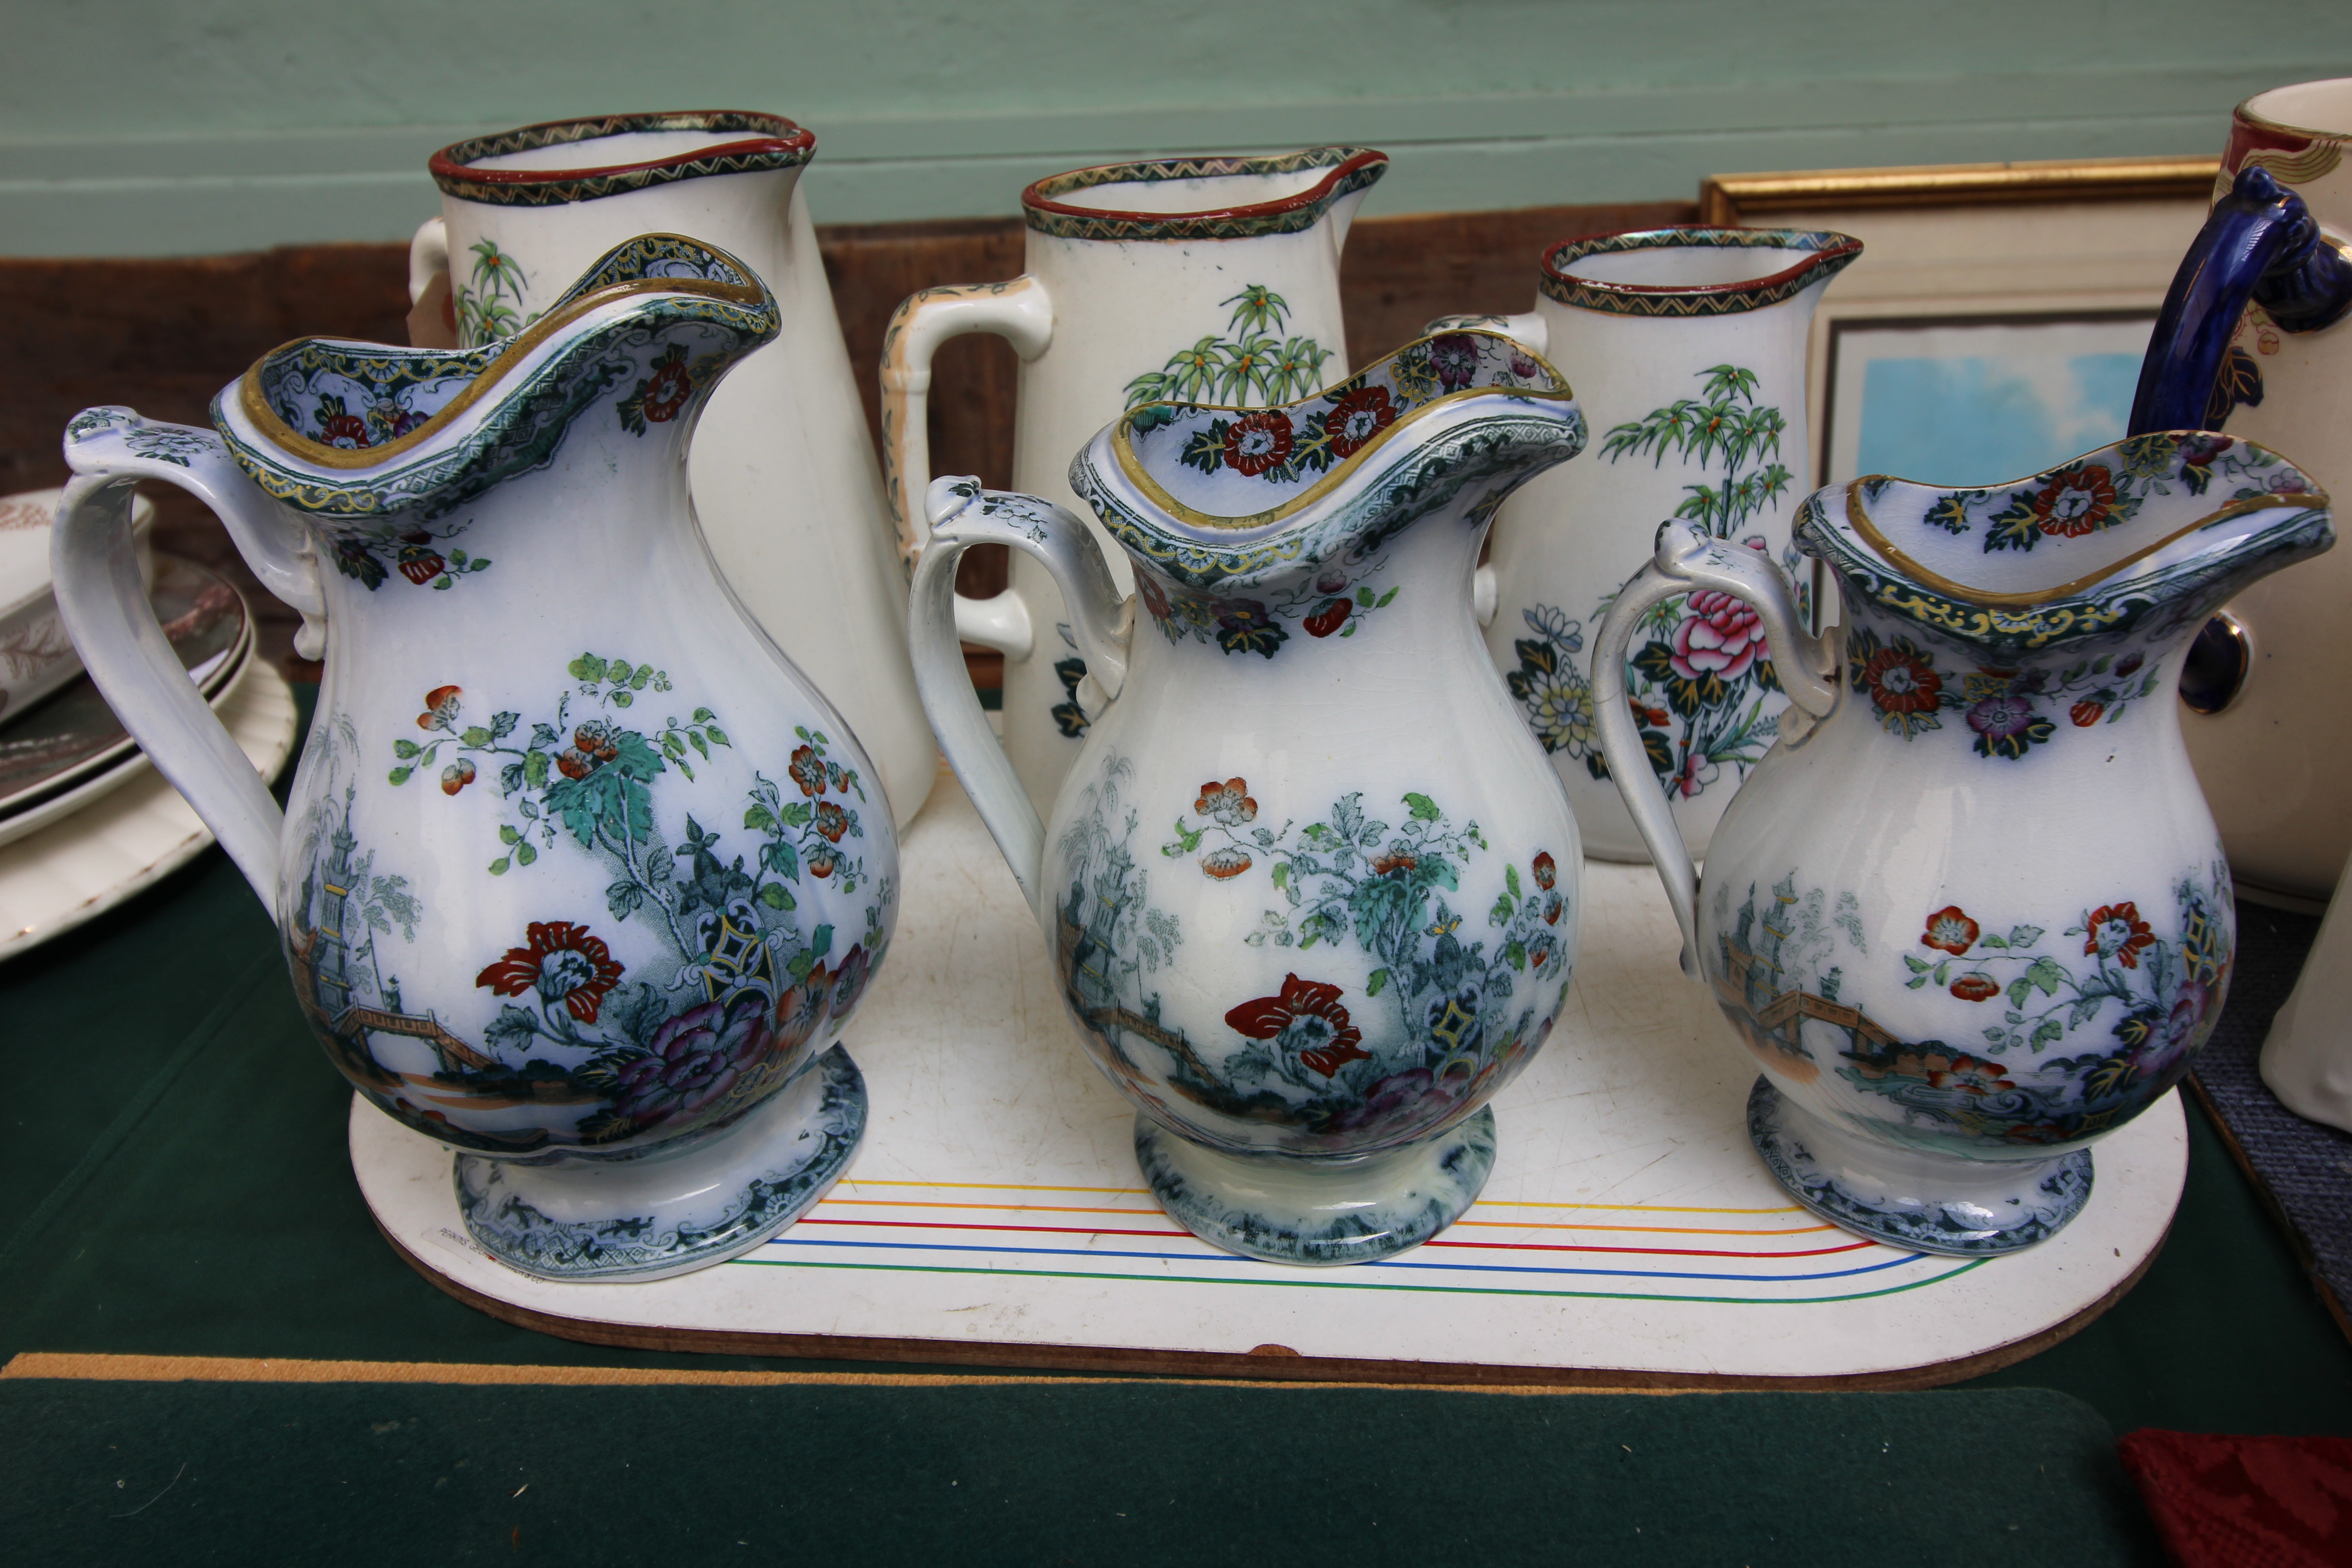 3 Decorative swan china graduated jugs and a further set of three graduated oriental patterned